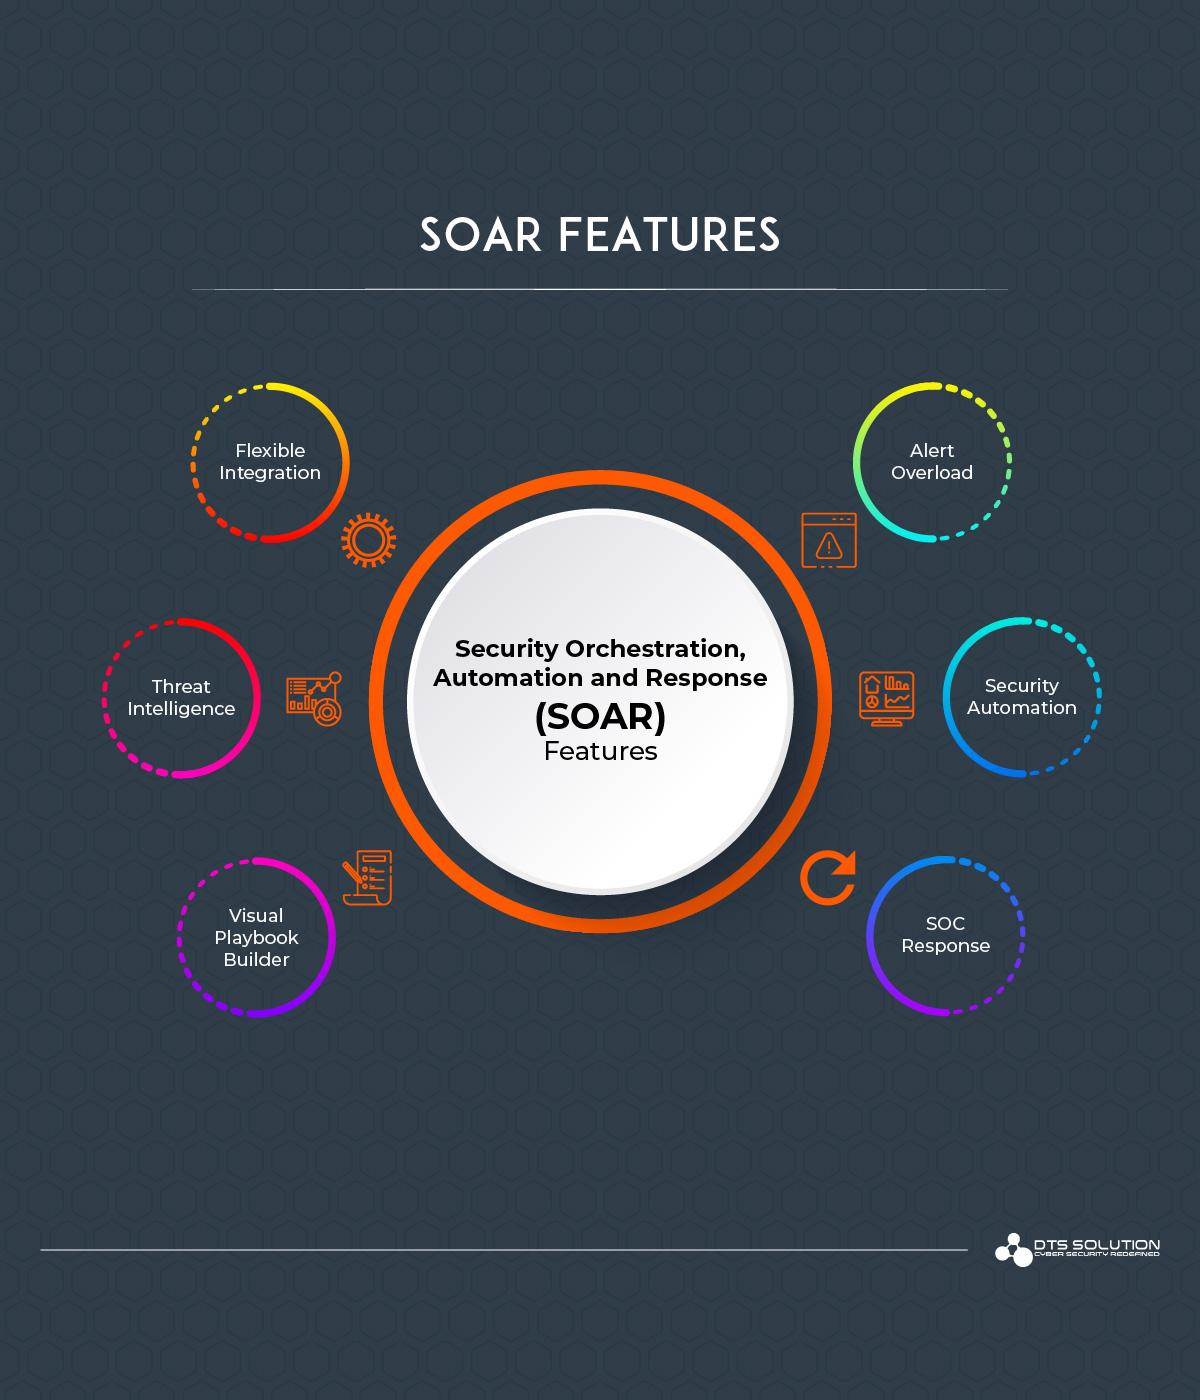 SOC Features and Use Cases